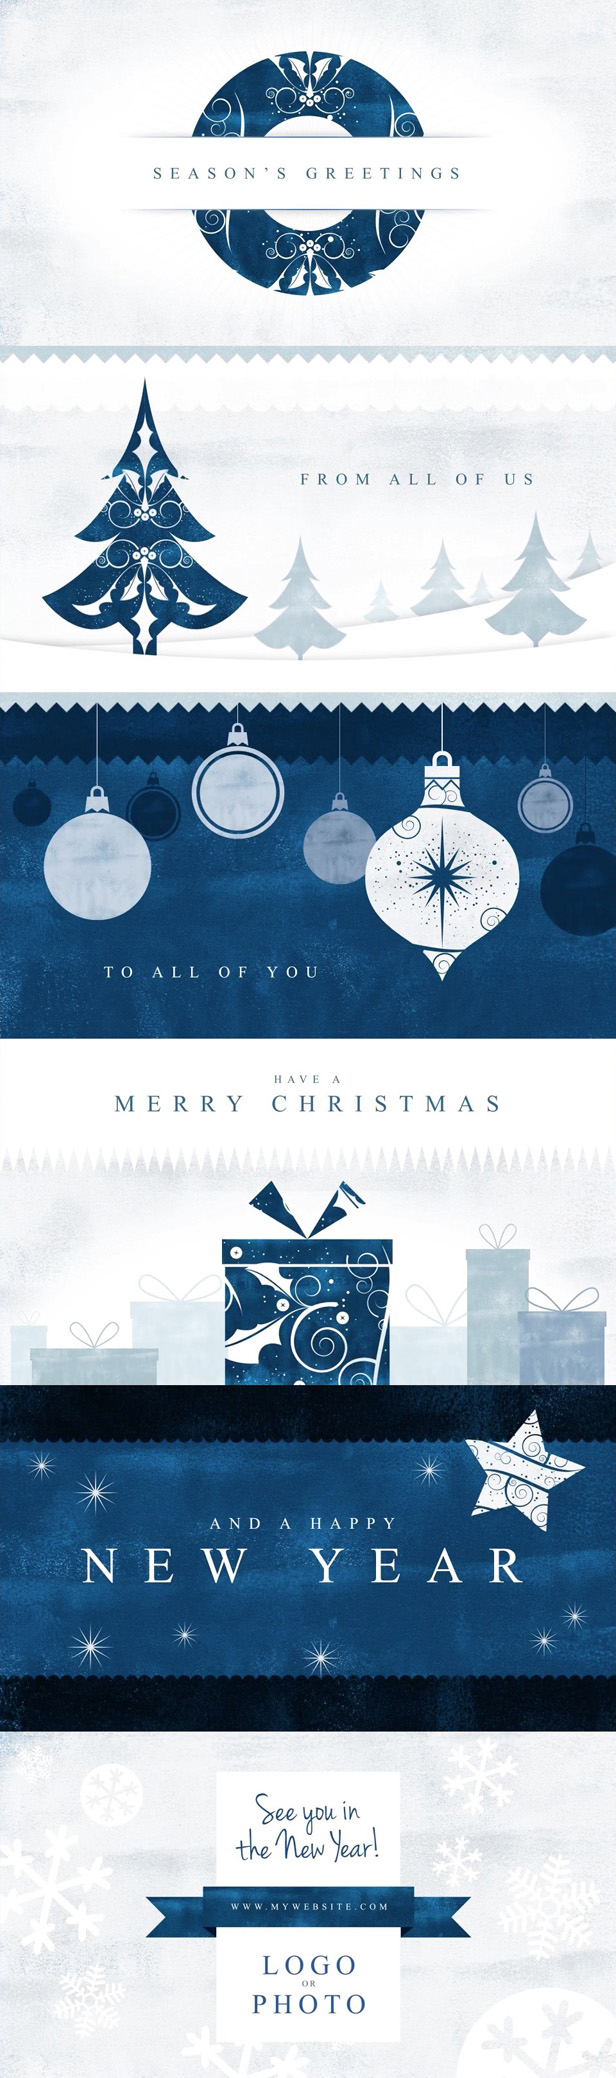 Parallax Christmas Greetings - 1